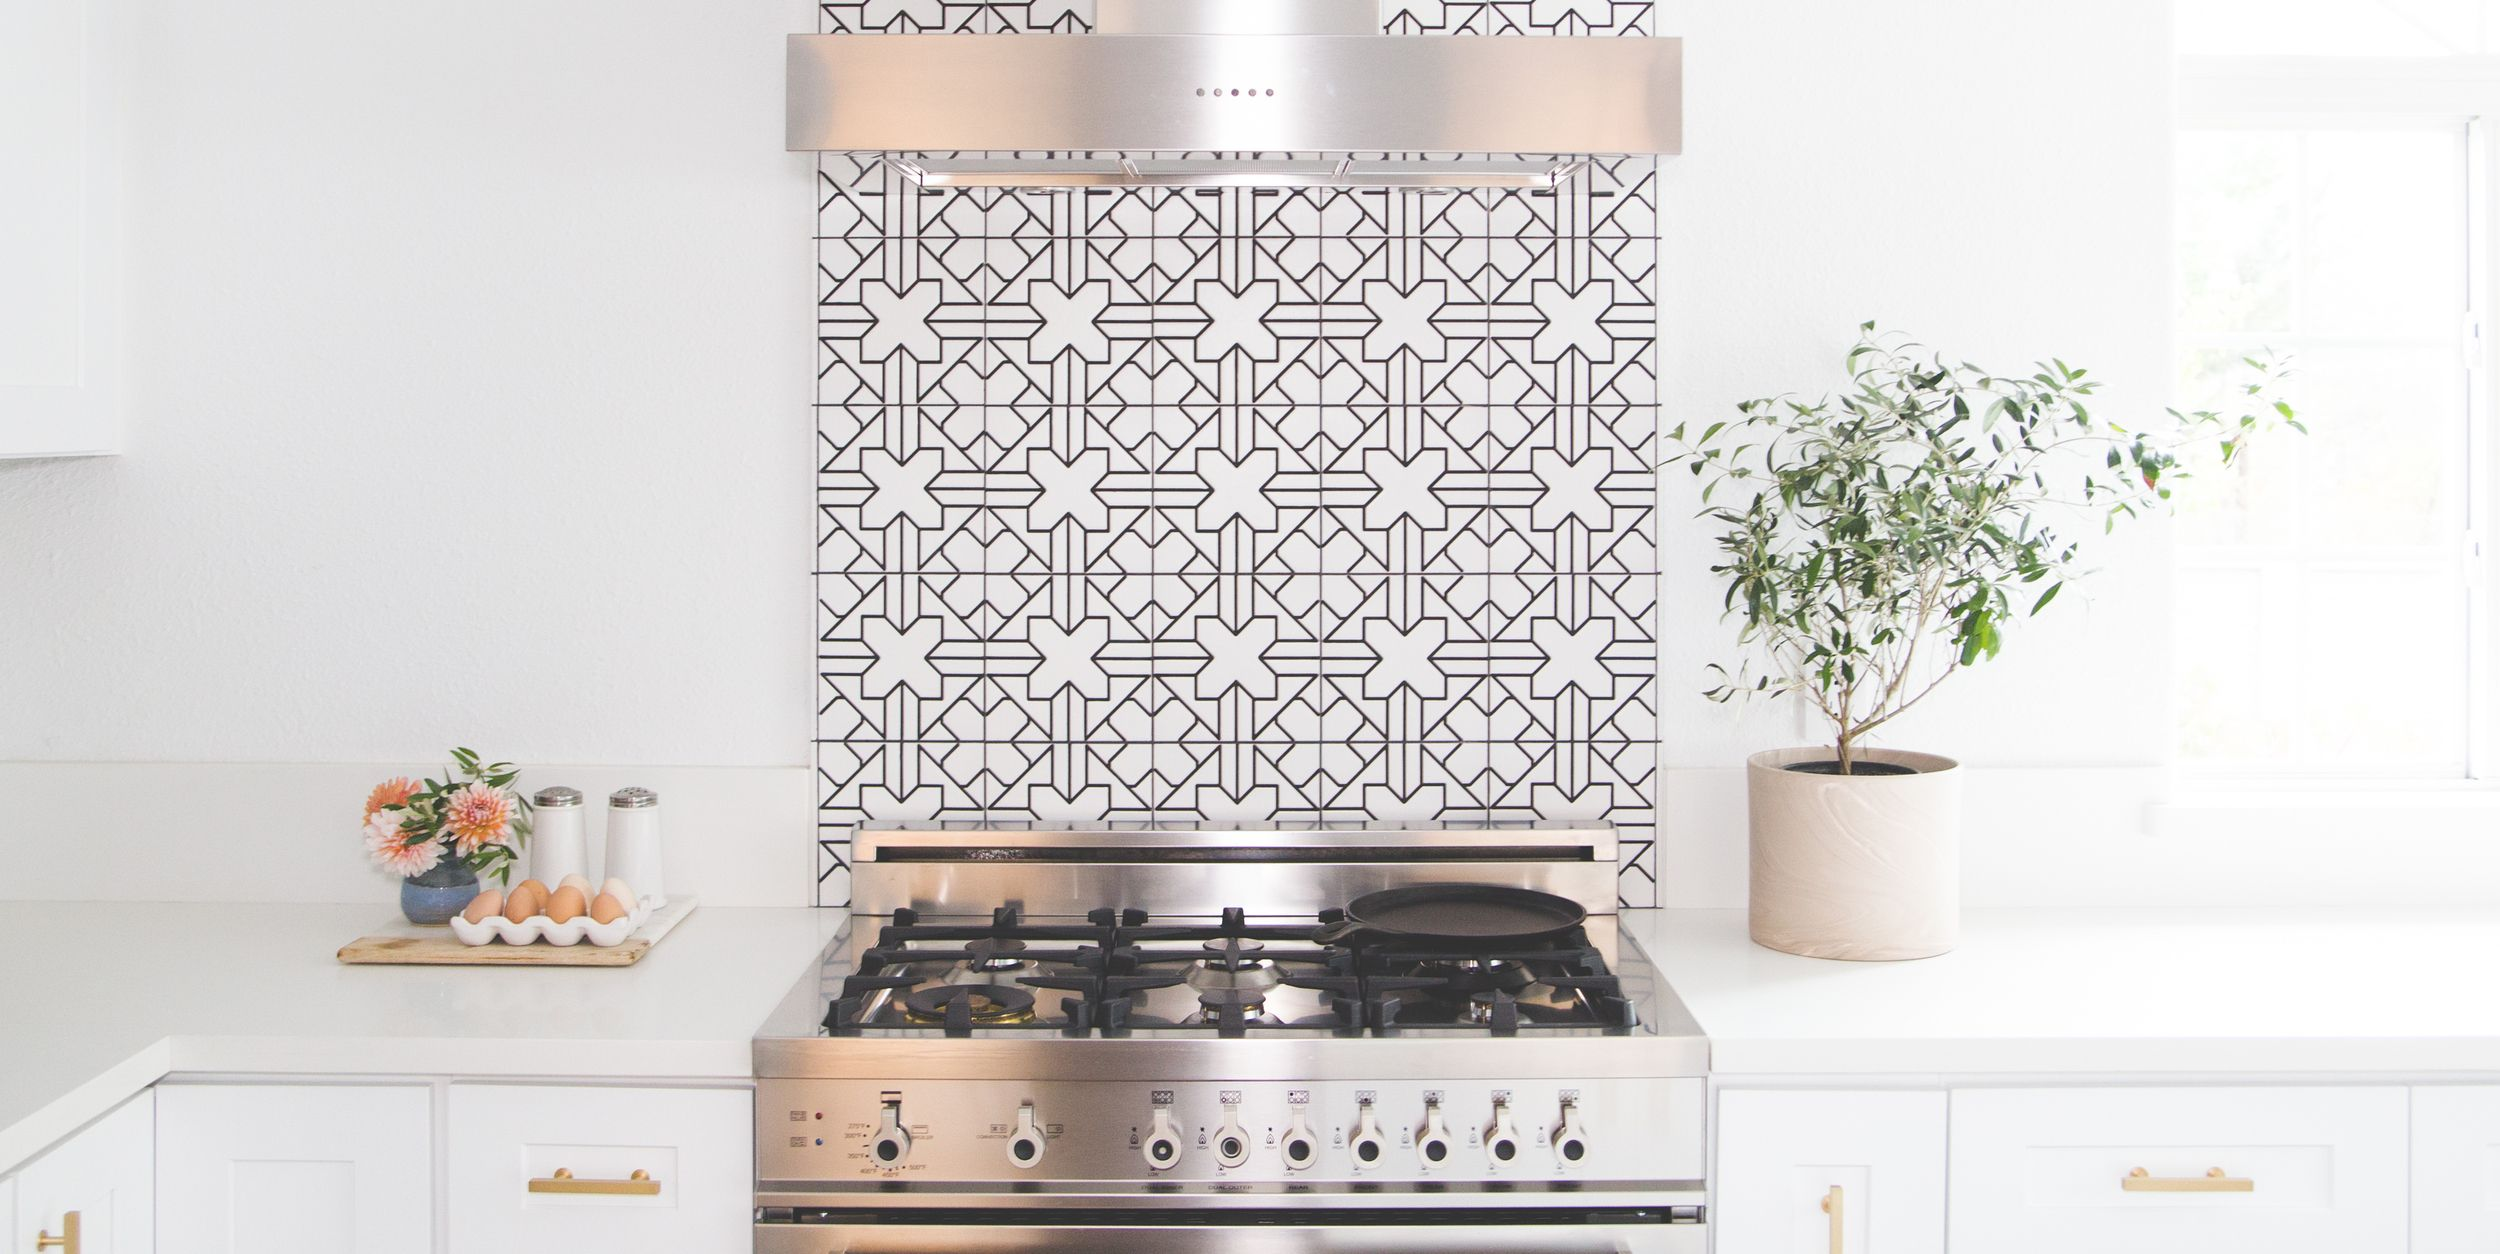 Kitchen Backsplash Ideas Tile Designs Backsplashes Image